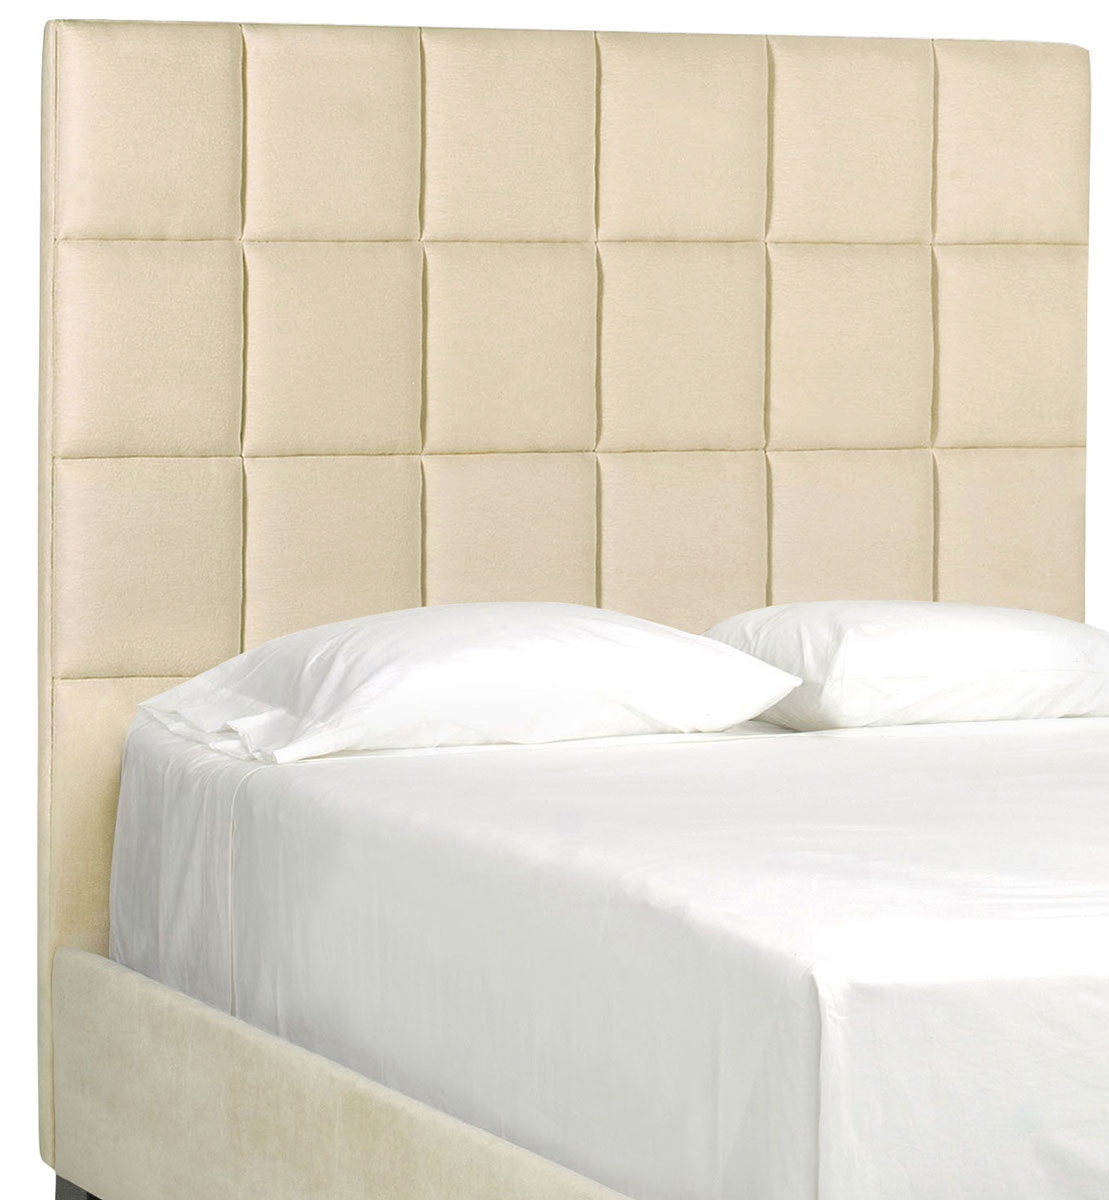 Dream Creations Grid Panel Headboard